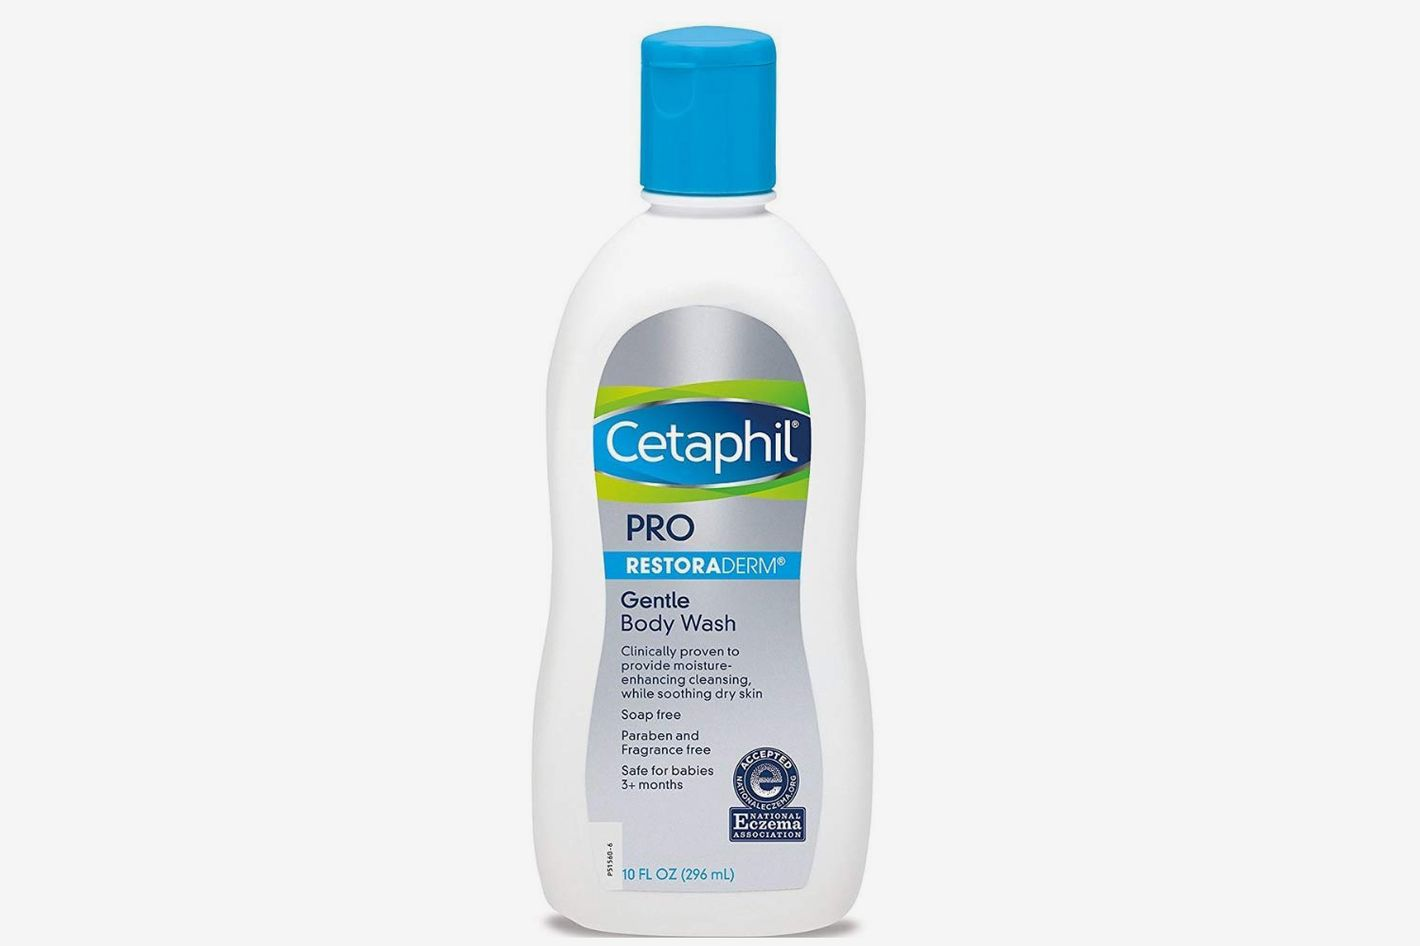 Cetaphil Pro Restoraderm,Gentle Body Wash 10 oz.